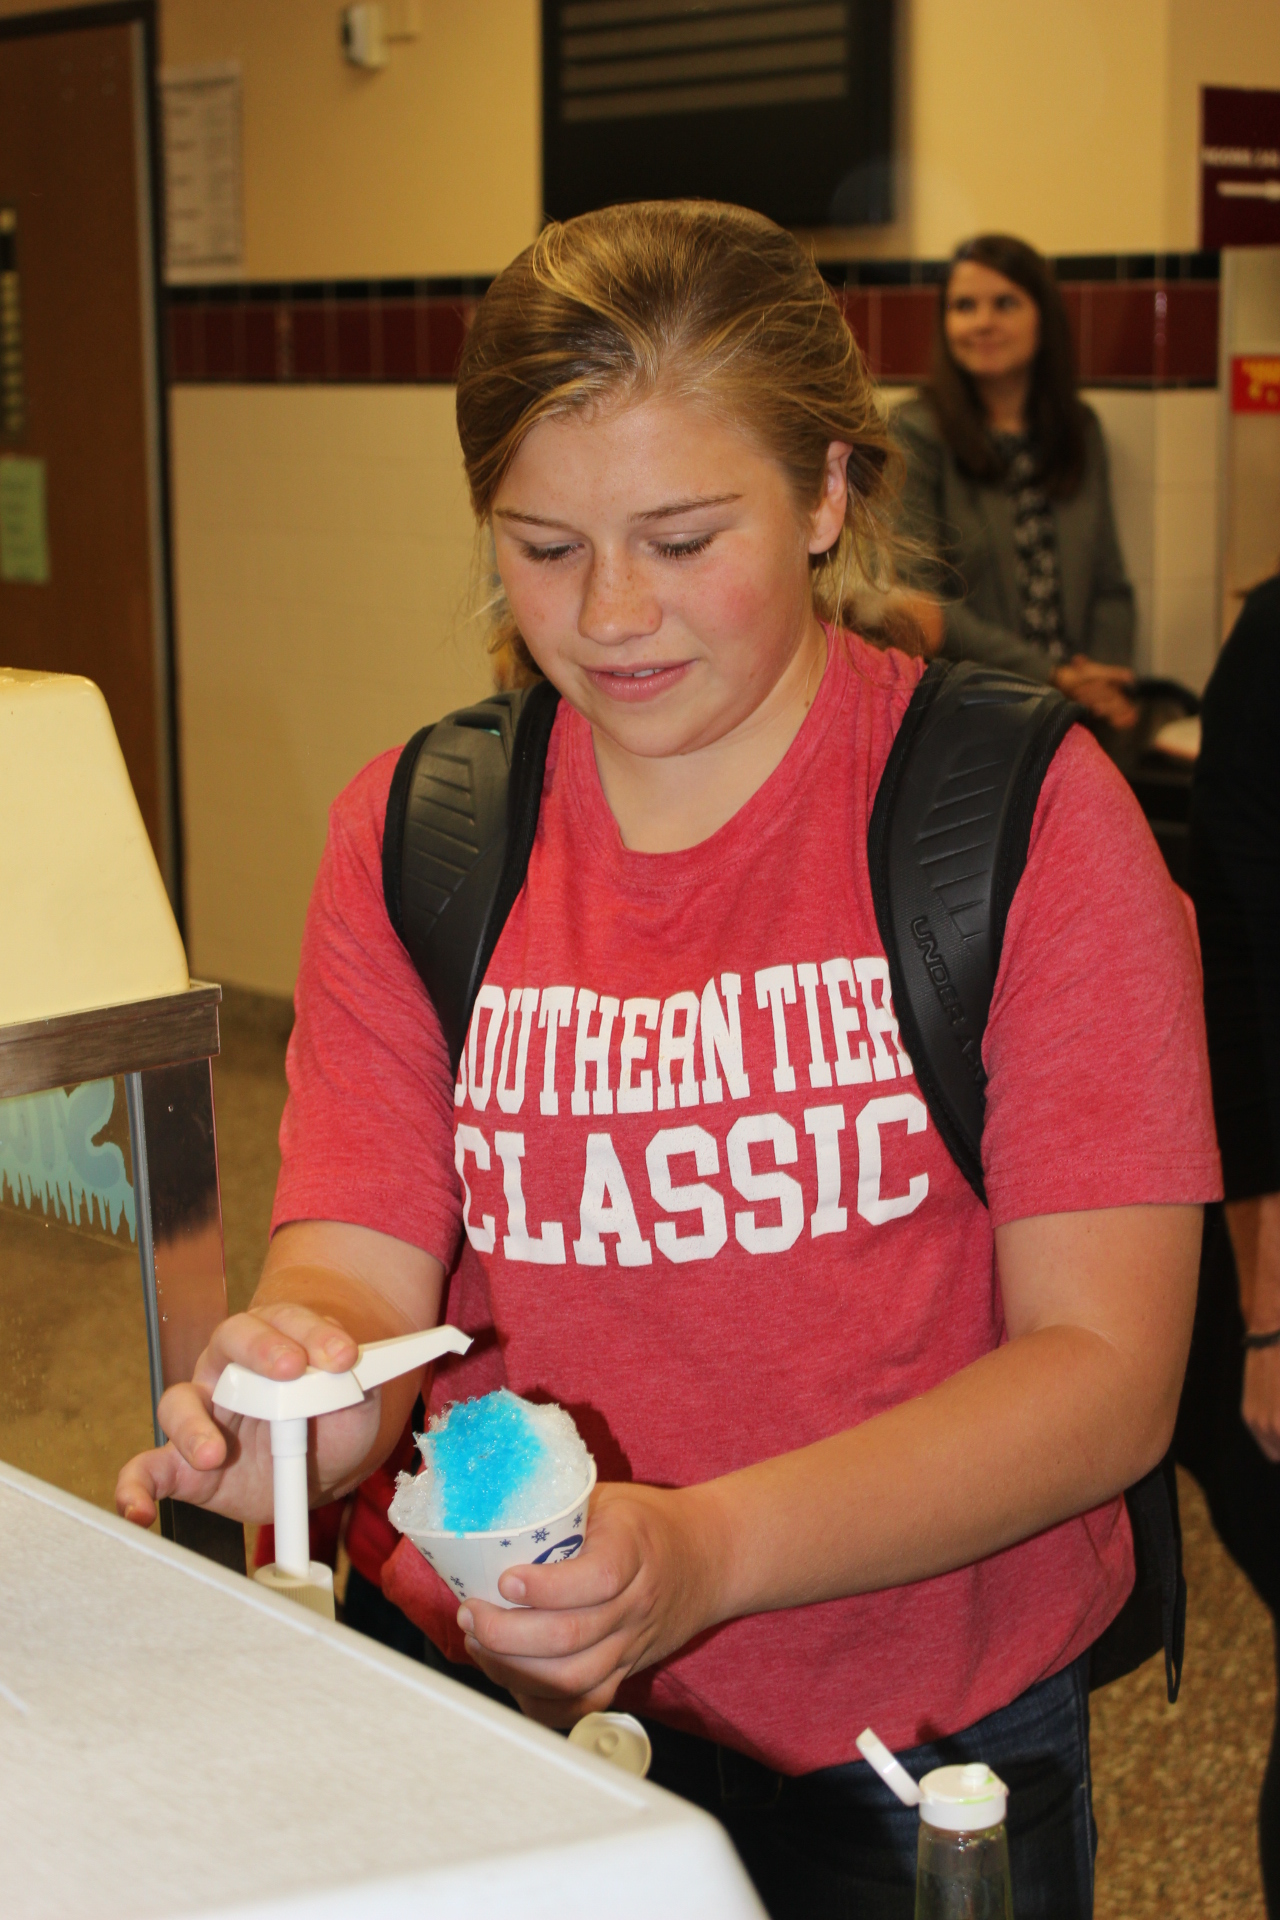 Student puts flavor on a snowcone